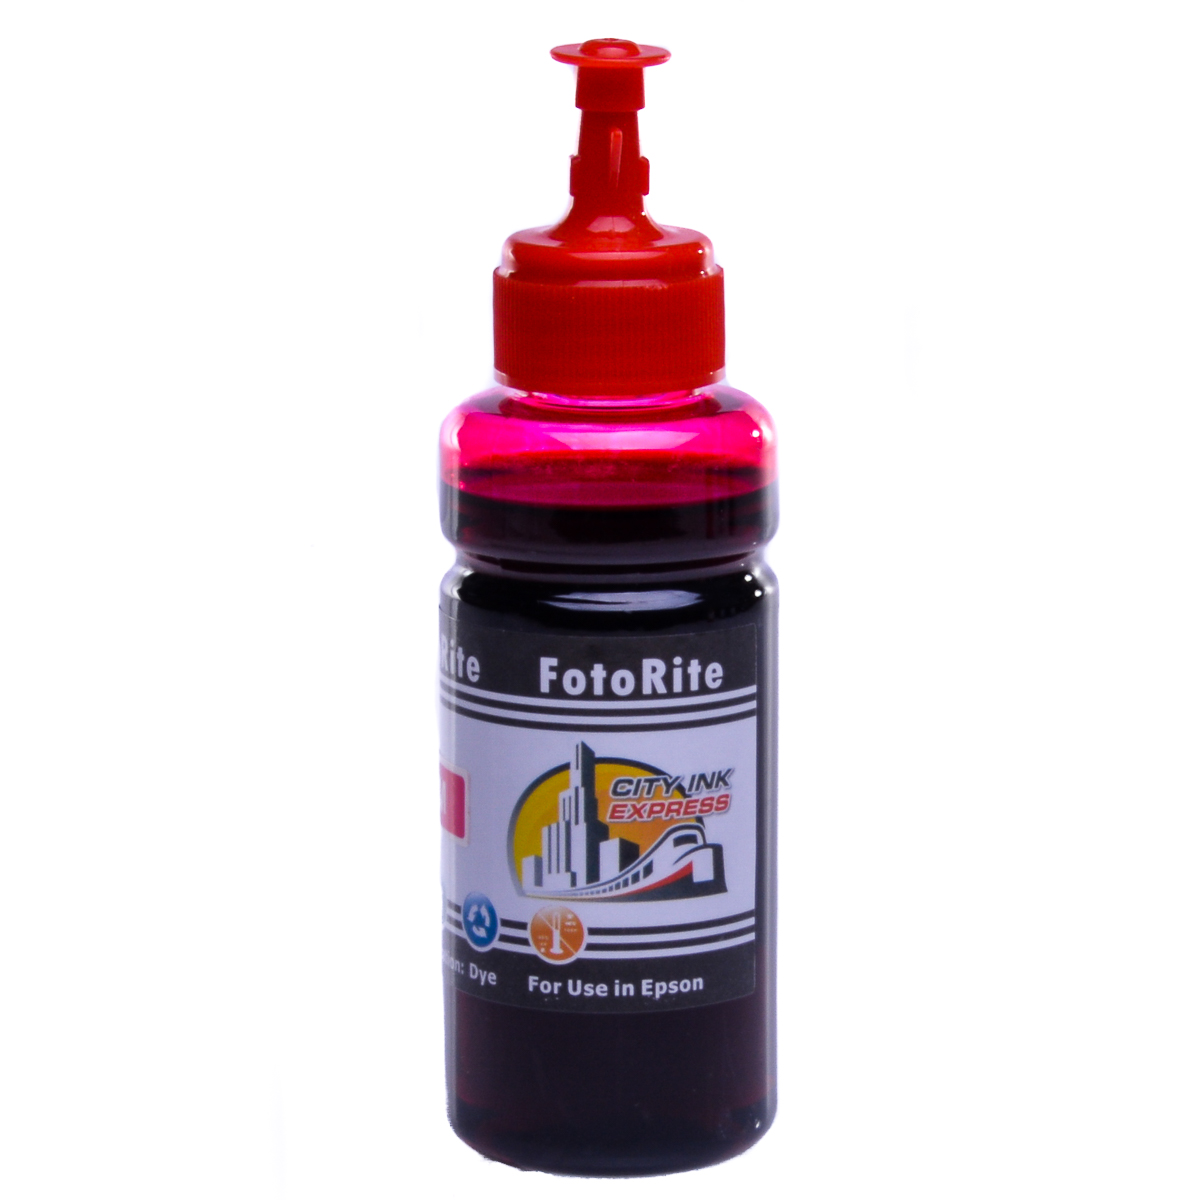 Cheap Magenta dye ink refill replaces Epson L850 - T6733